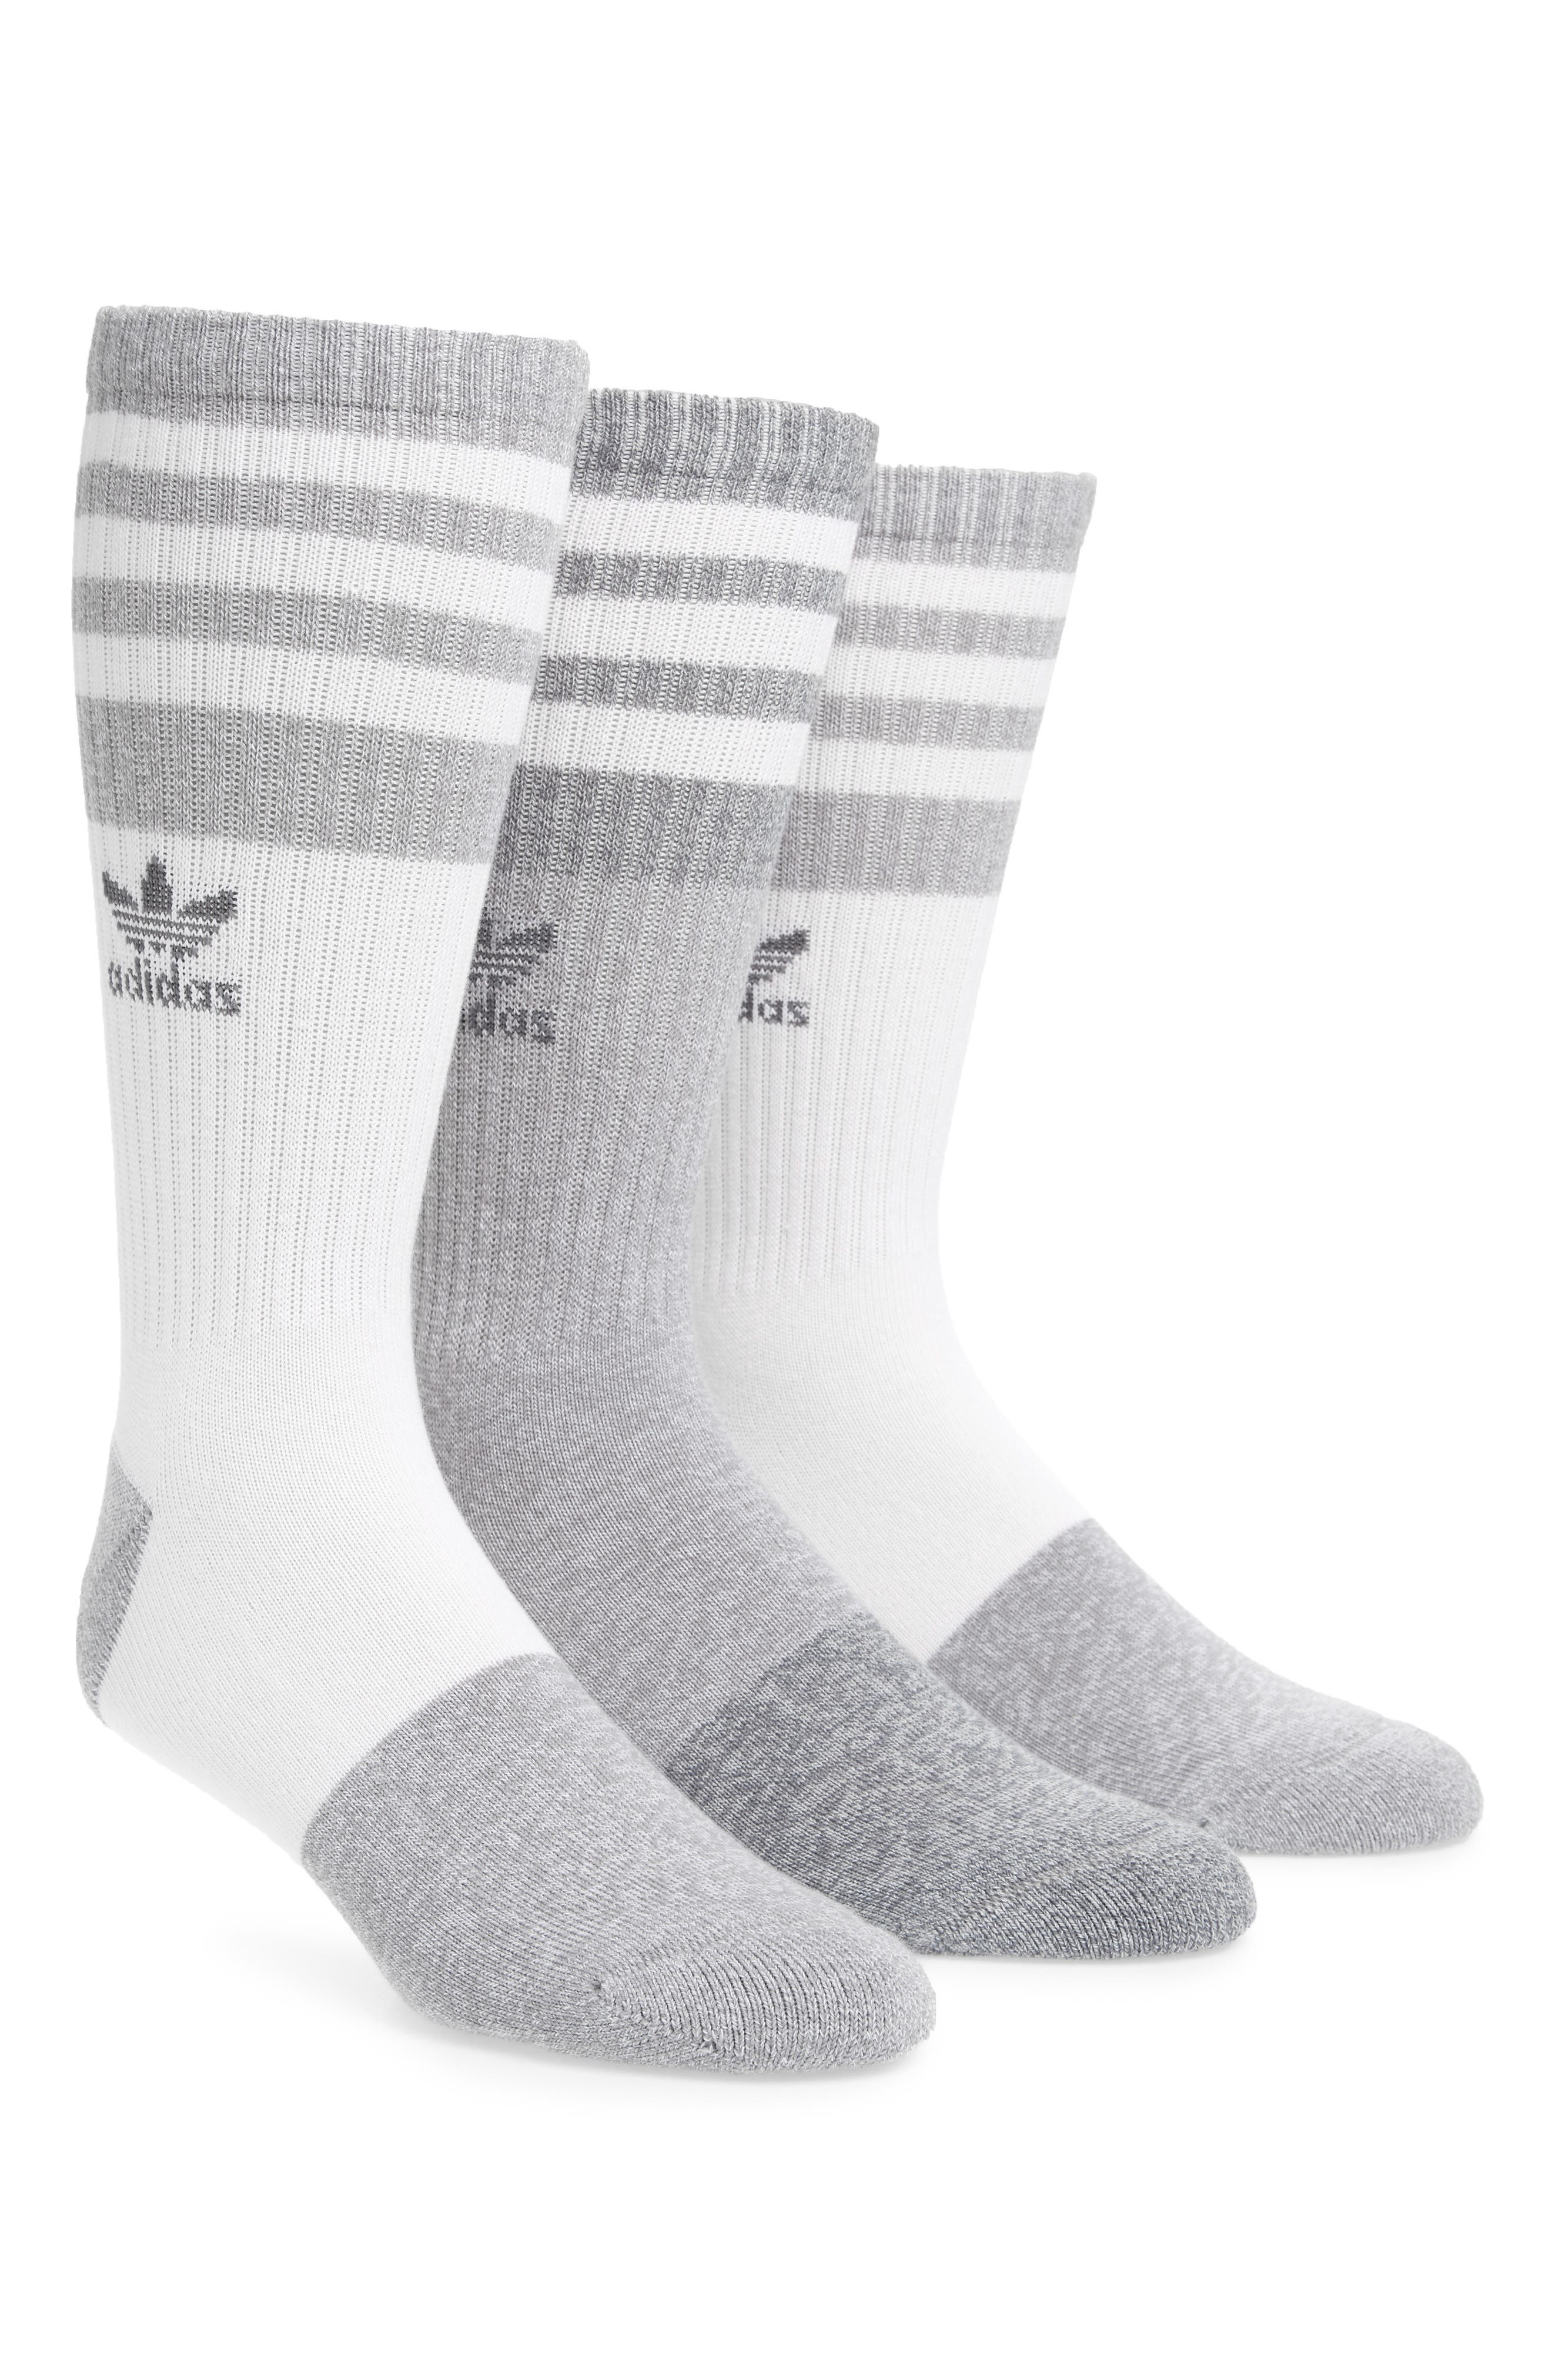 3-Pack Stripe Crew Socks,                             Main thumbnail 1, color,                             White/ Clear Grey/ Onyx